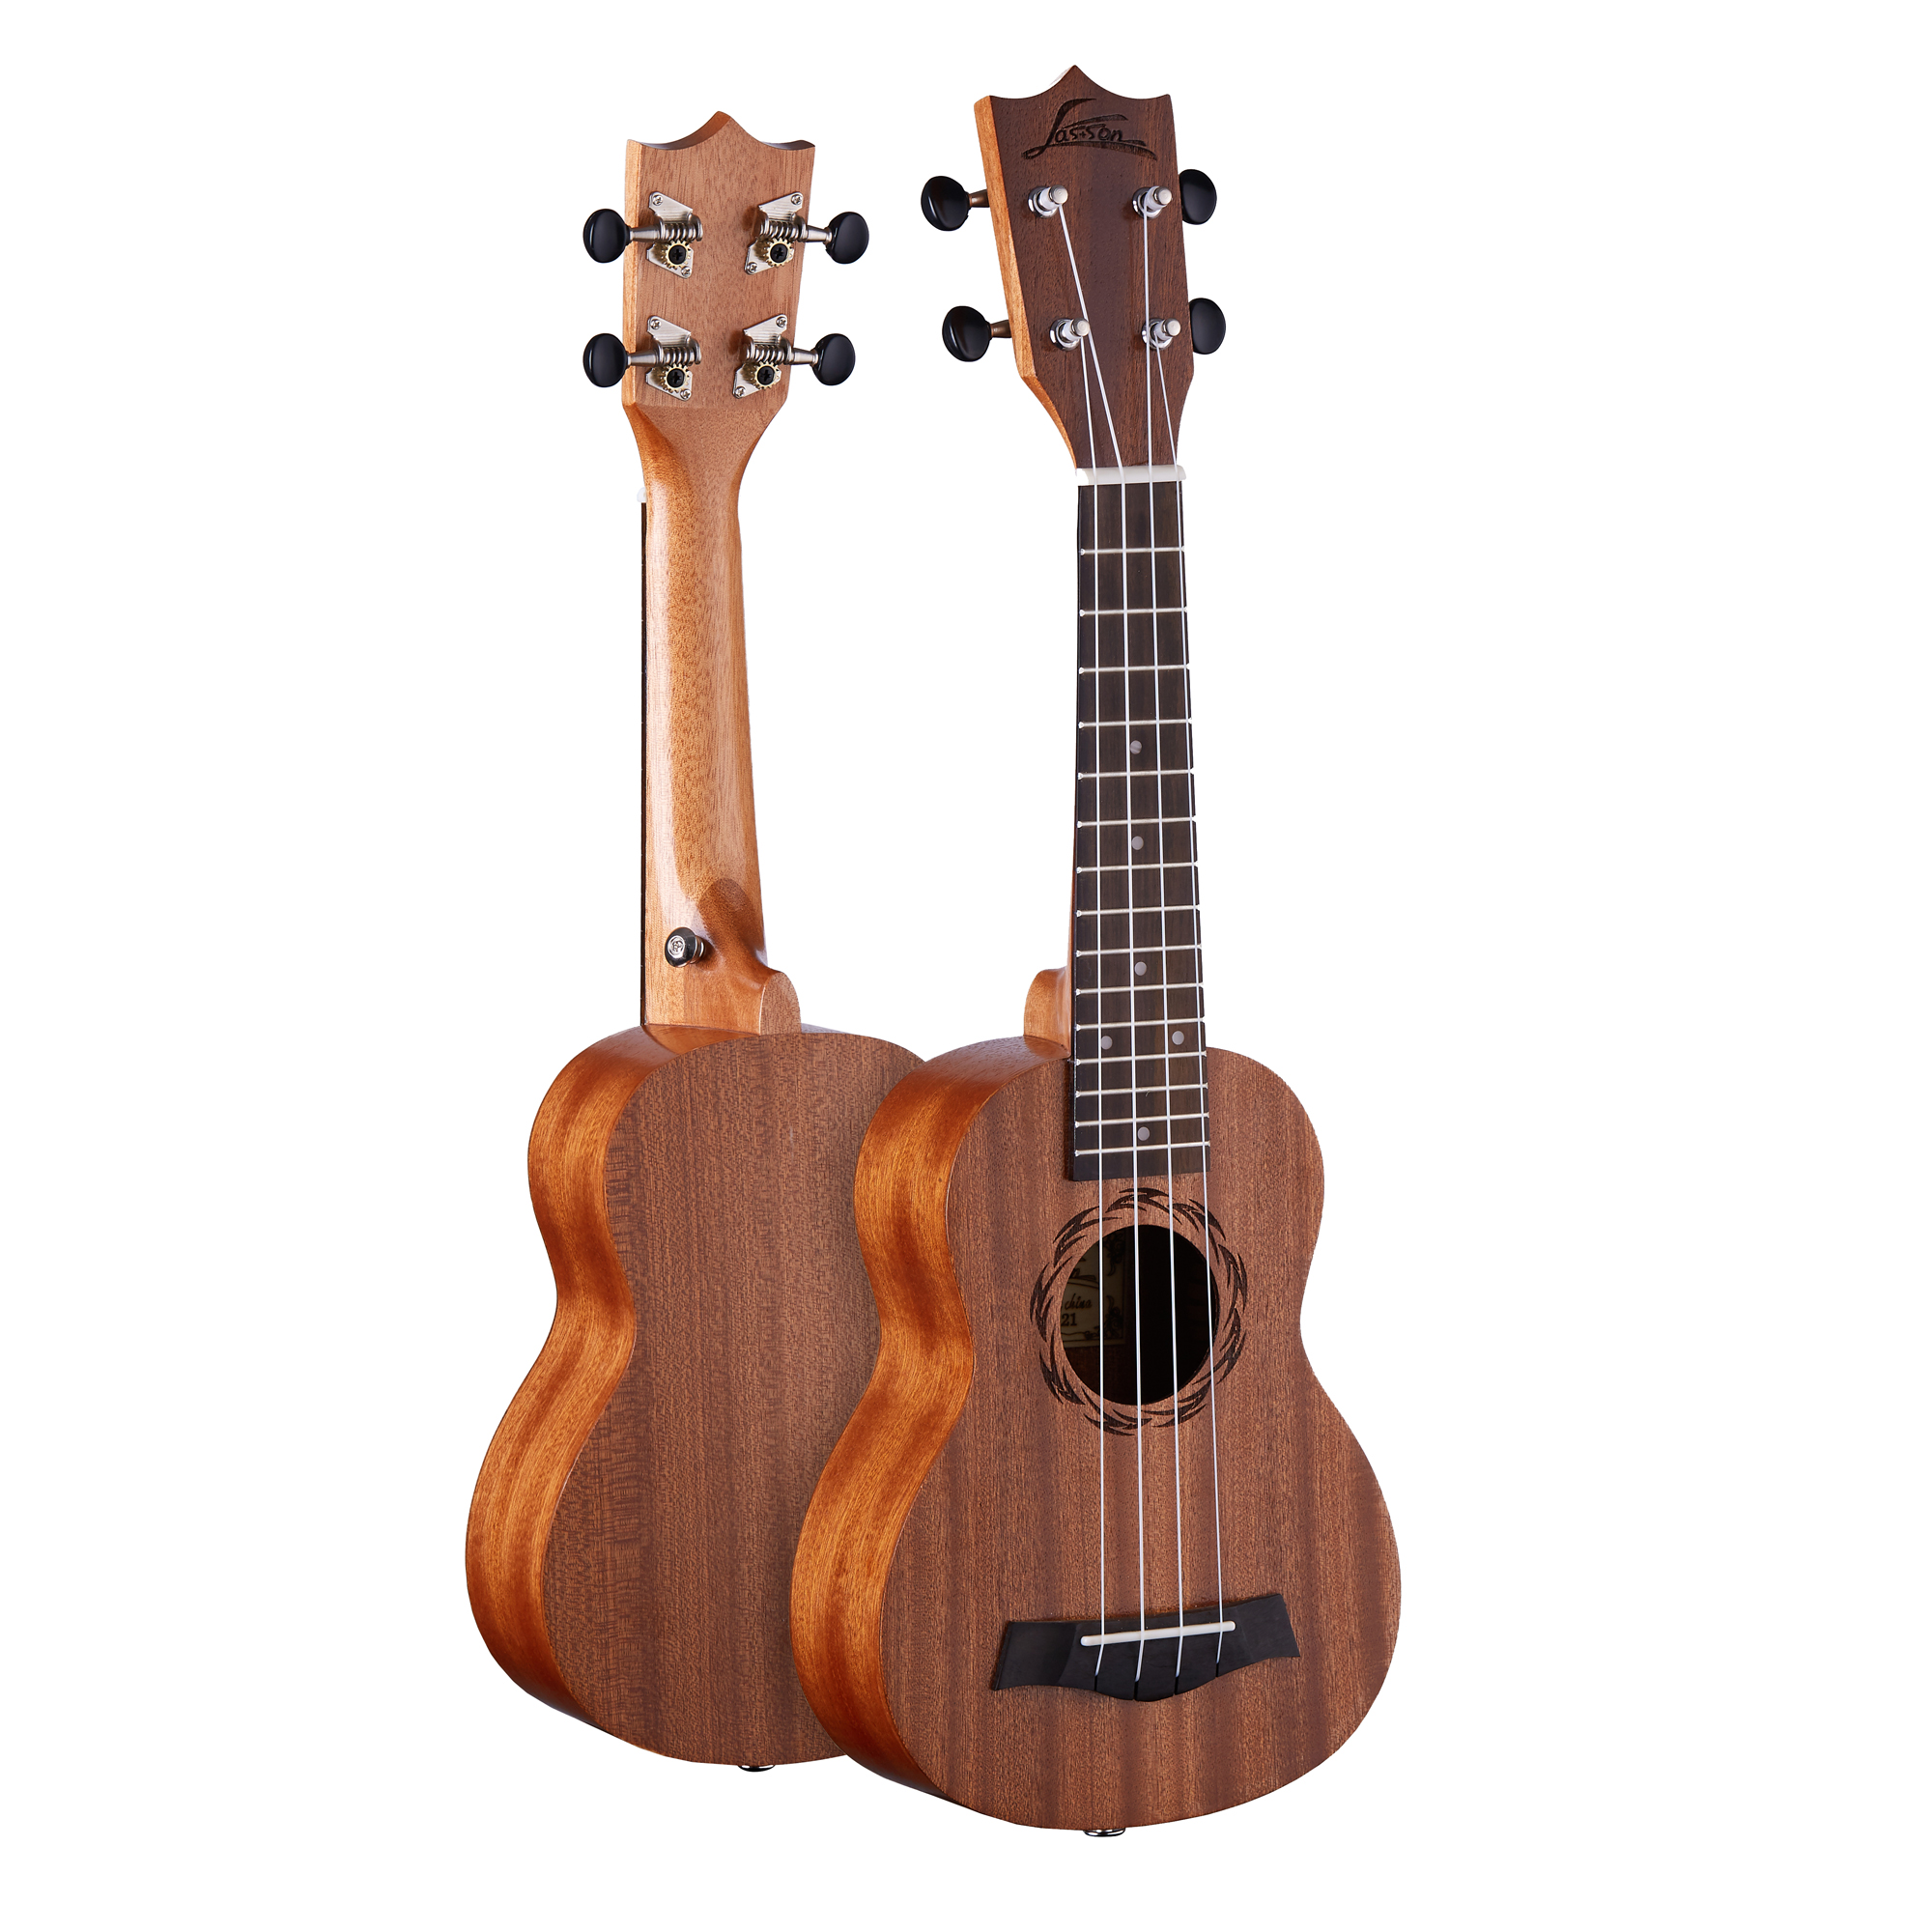 23 inch Concert Ukulele 15 Fret Sapele Top Back Side Rosewood Fingerboard Mahogany Neck U1-23 niko black 21 23 26 ukulele bag silver edge nylon soprano concert tenor soft case gig bag 5mm thick sponge